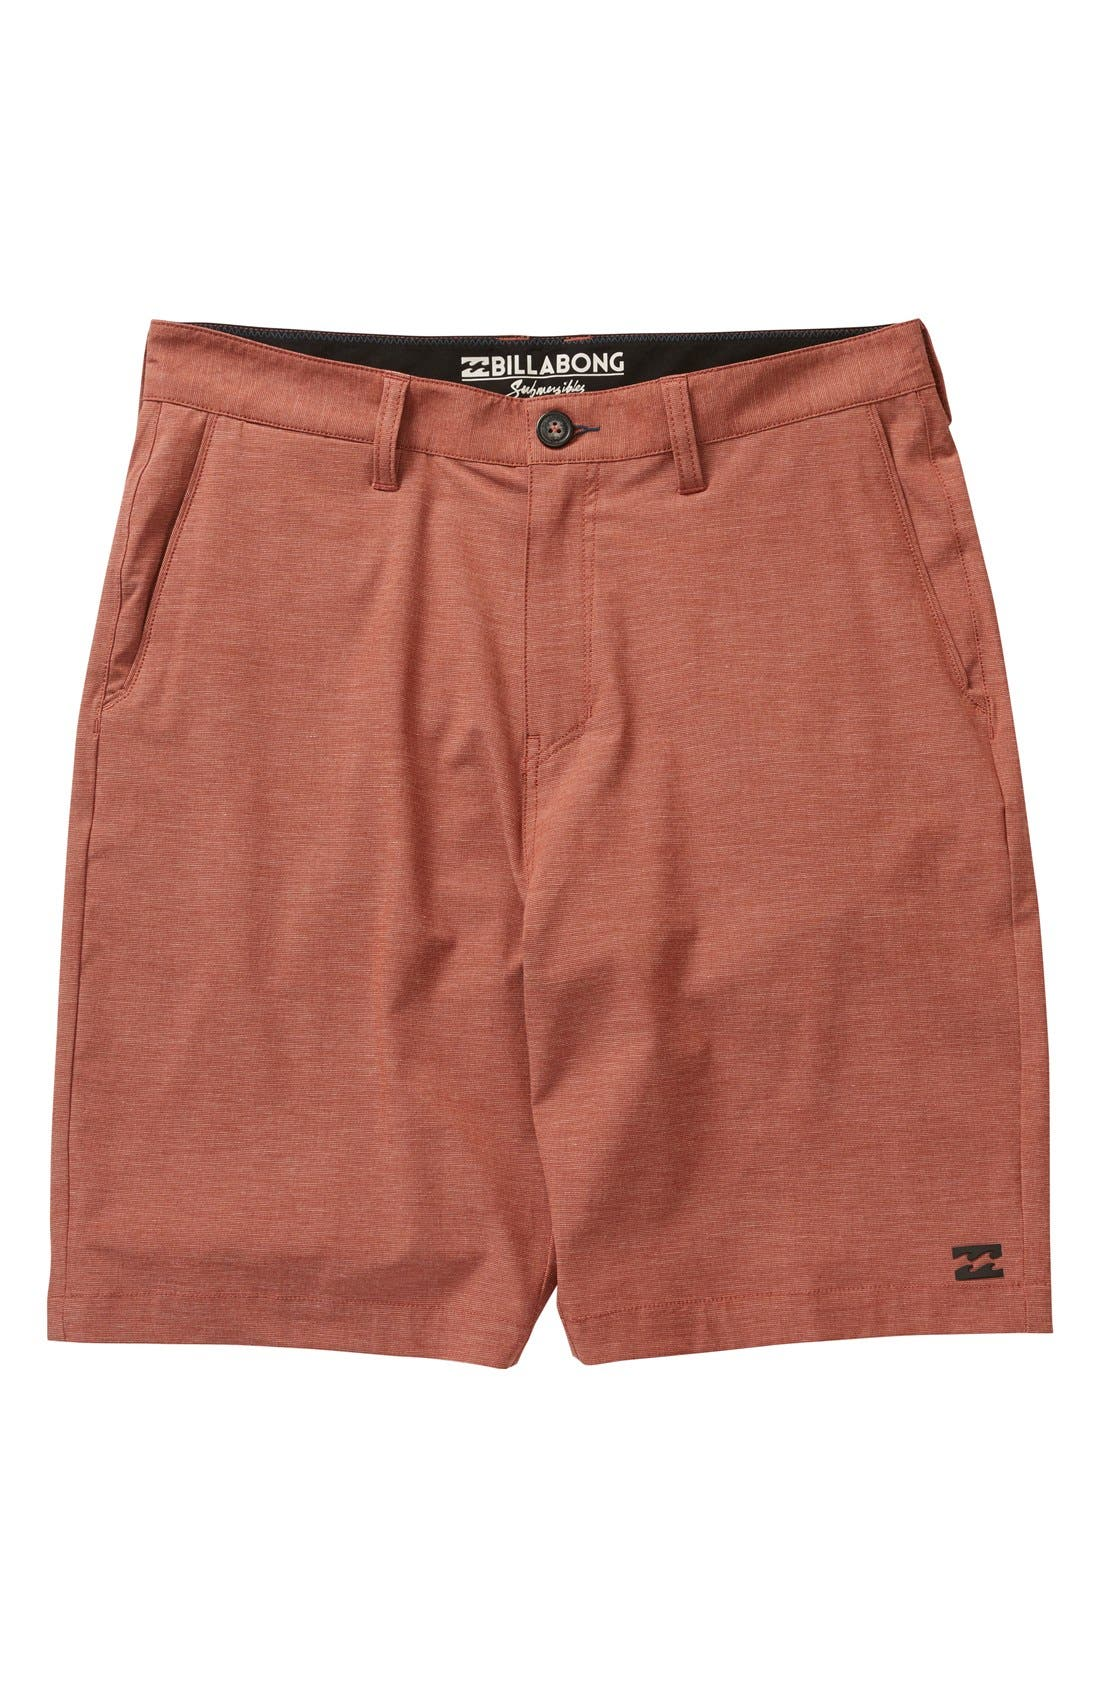 Crossfire X Submersible Hybrid Shorts,                             Main thumbnail 12, color,